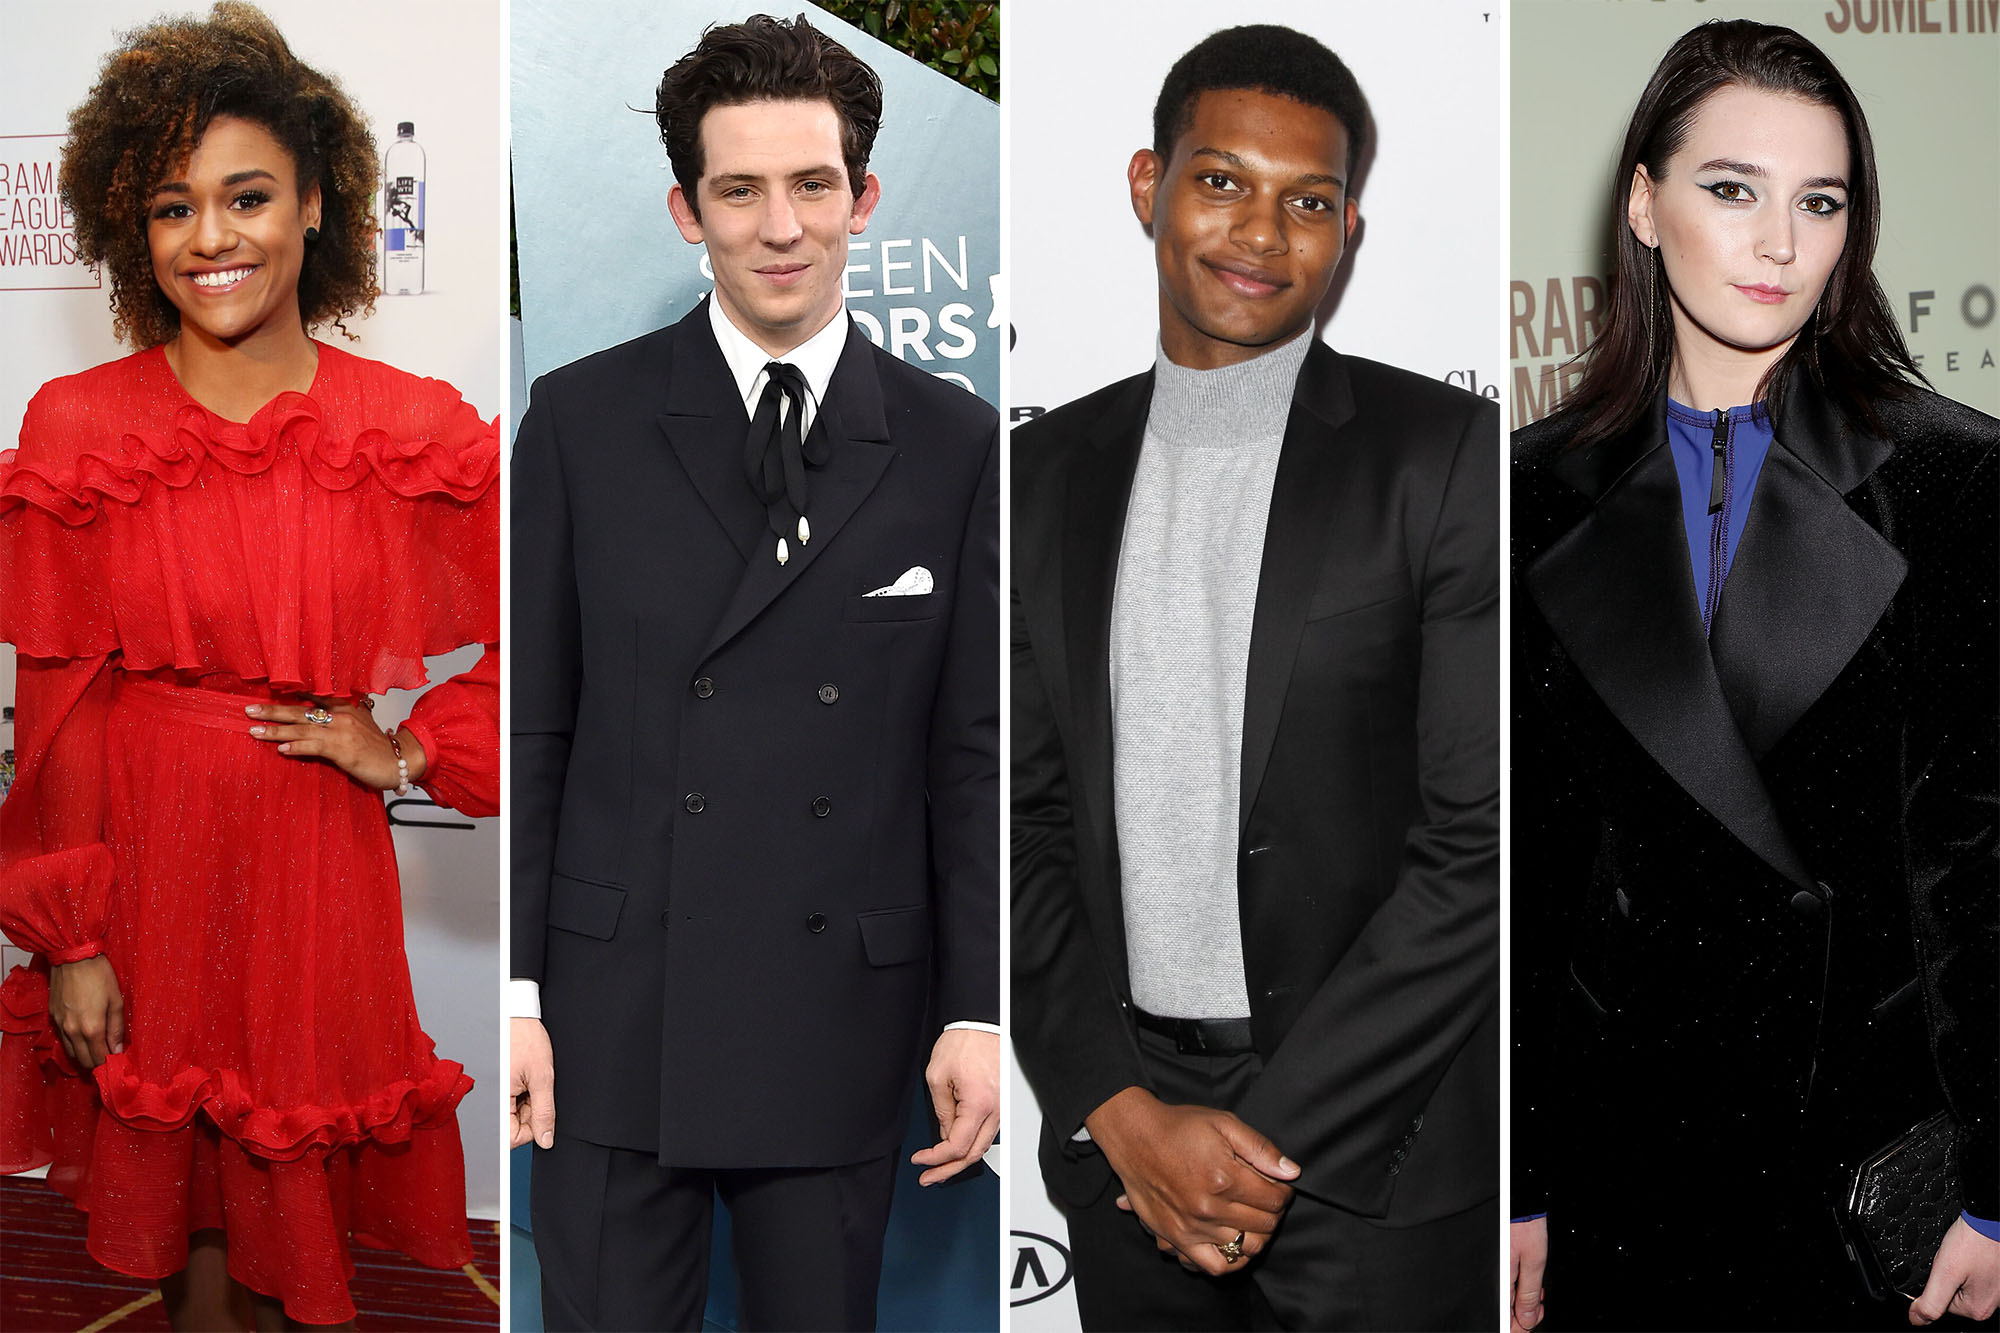 10 rising film and TV stars poised to soar in 2021